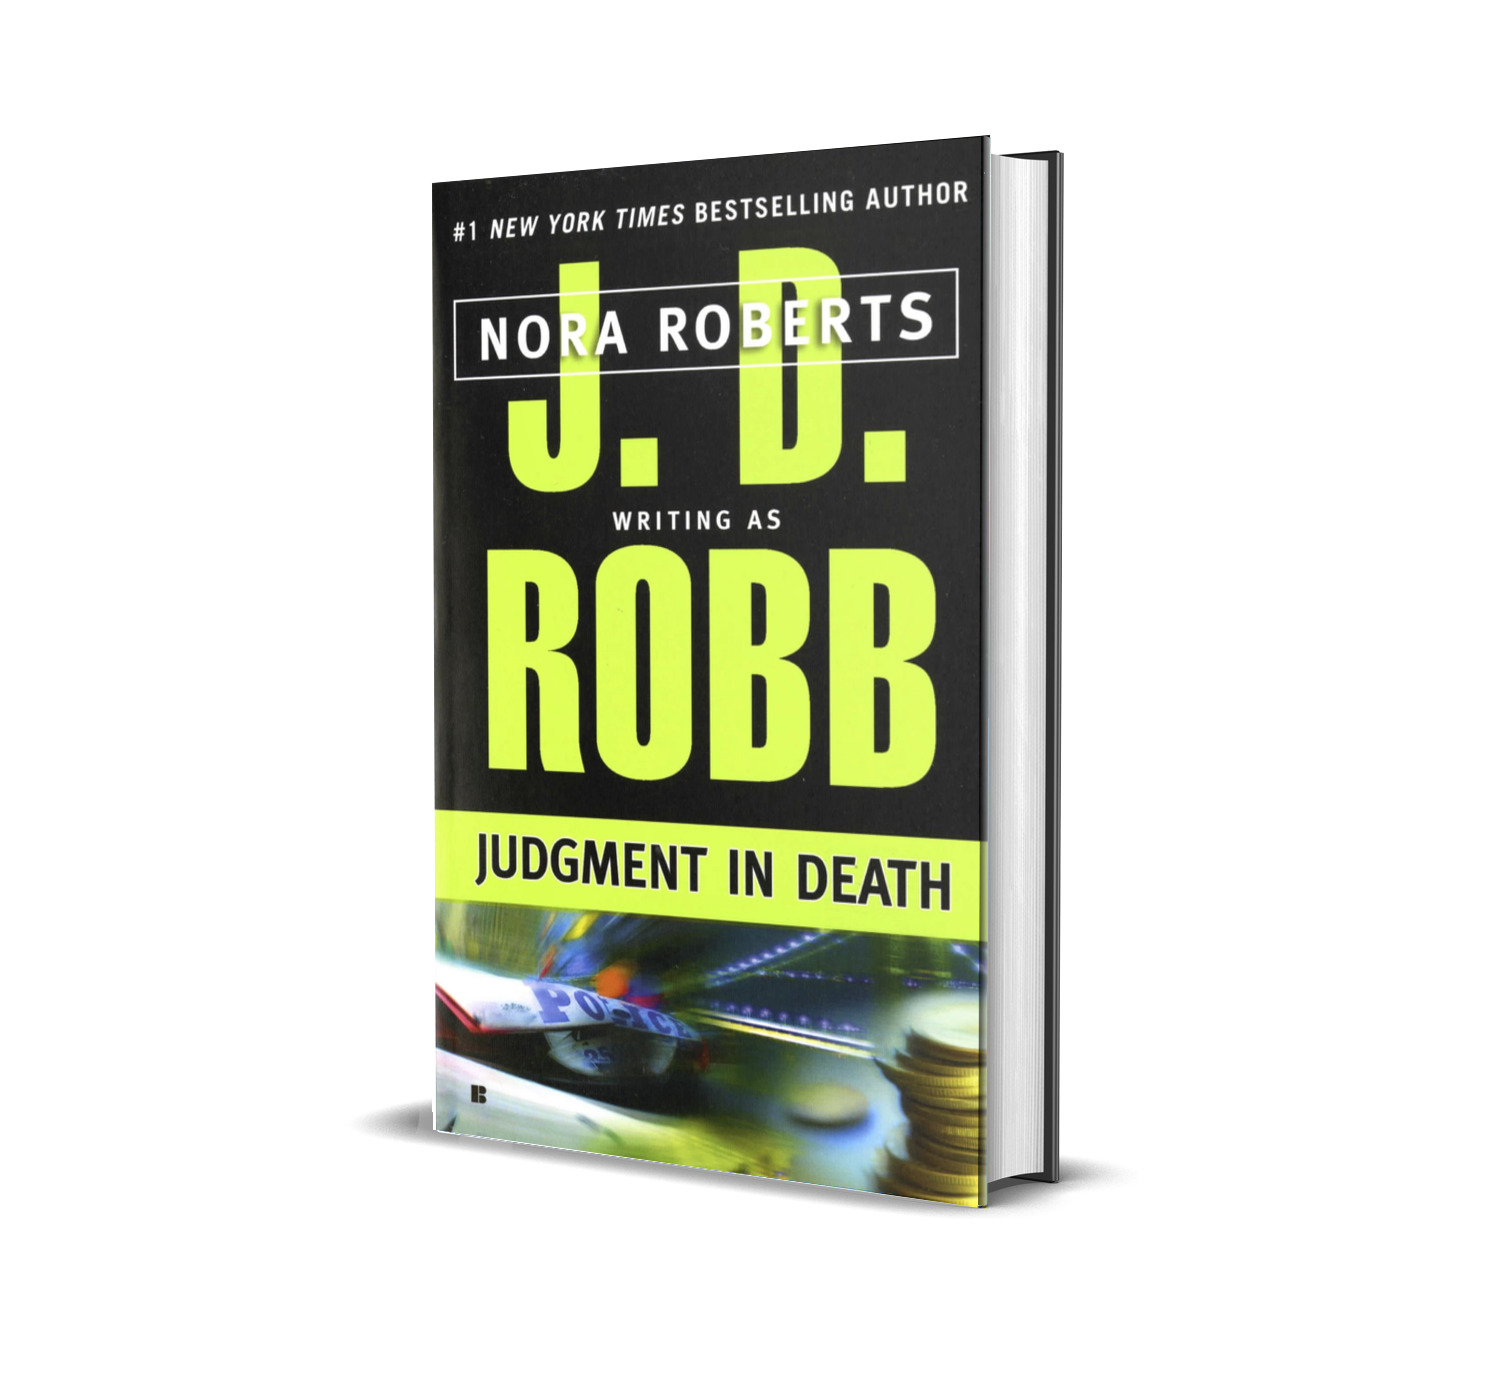 JUDGMENT IN DEATH NORA ROBERTS